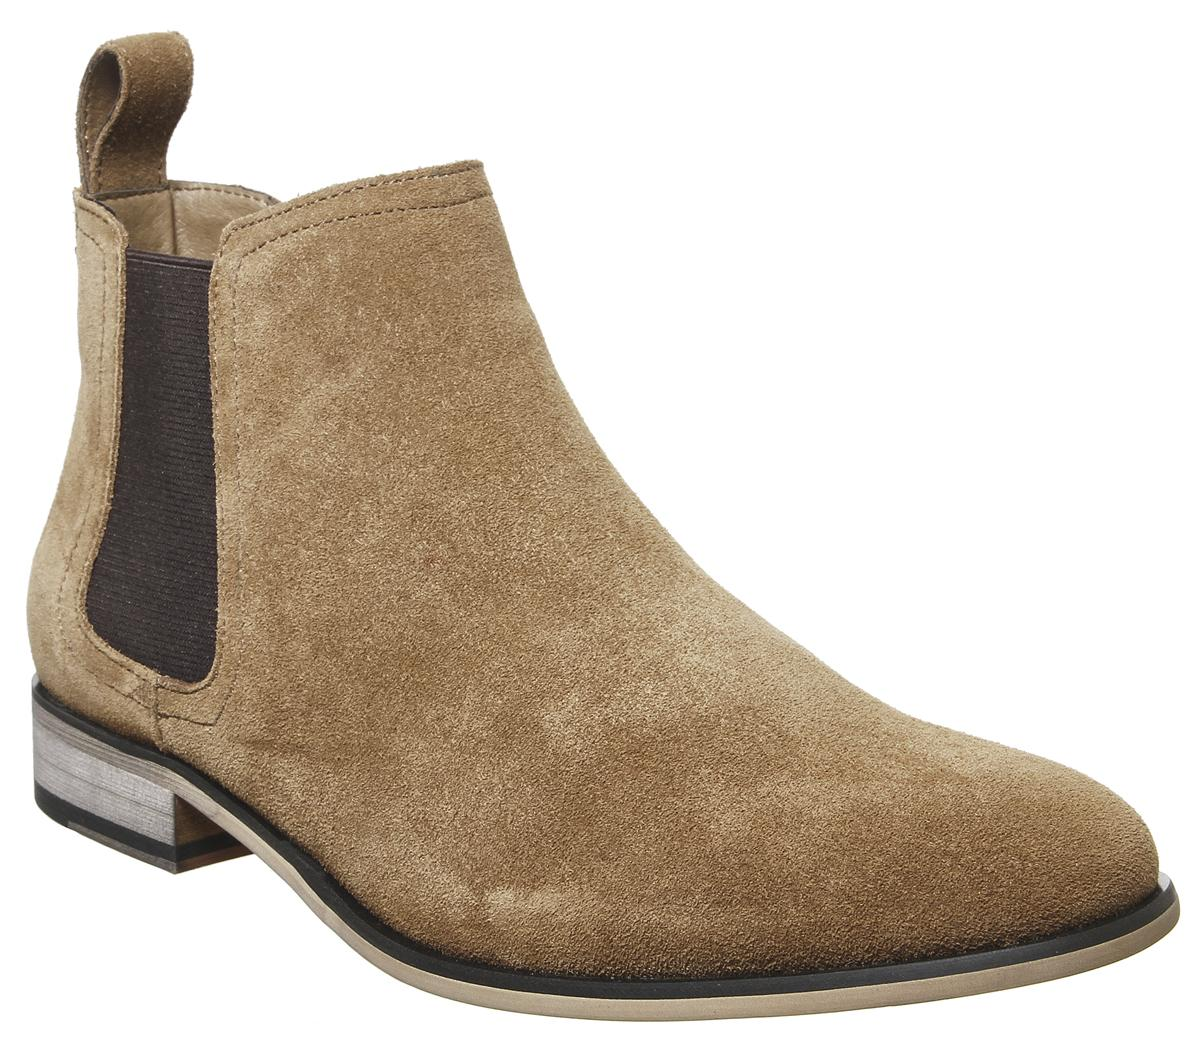 Mens Office Barkley Chelsea Boot Tan Suede